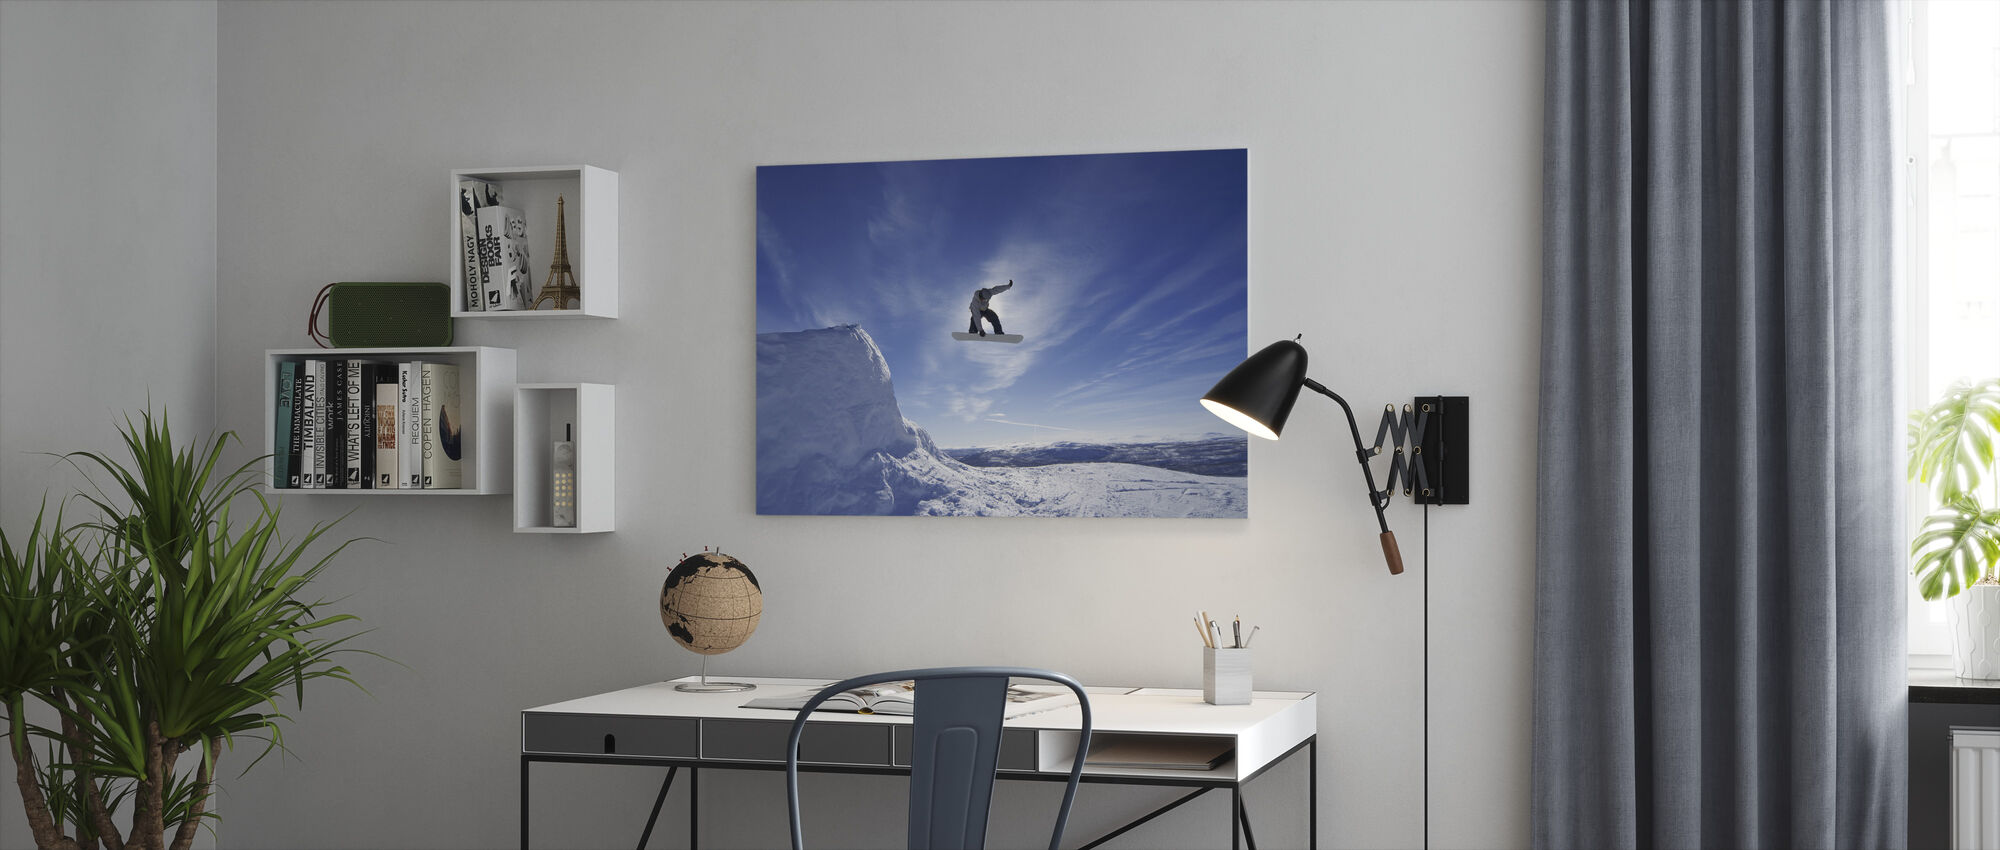 Snowboard Big Air Jump - Canvas print - Kantoor